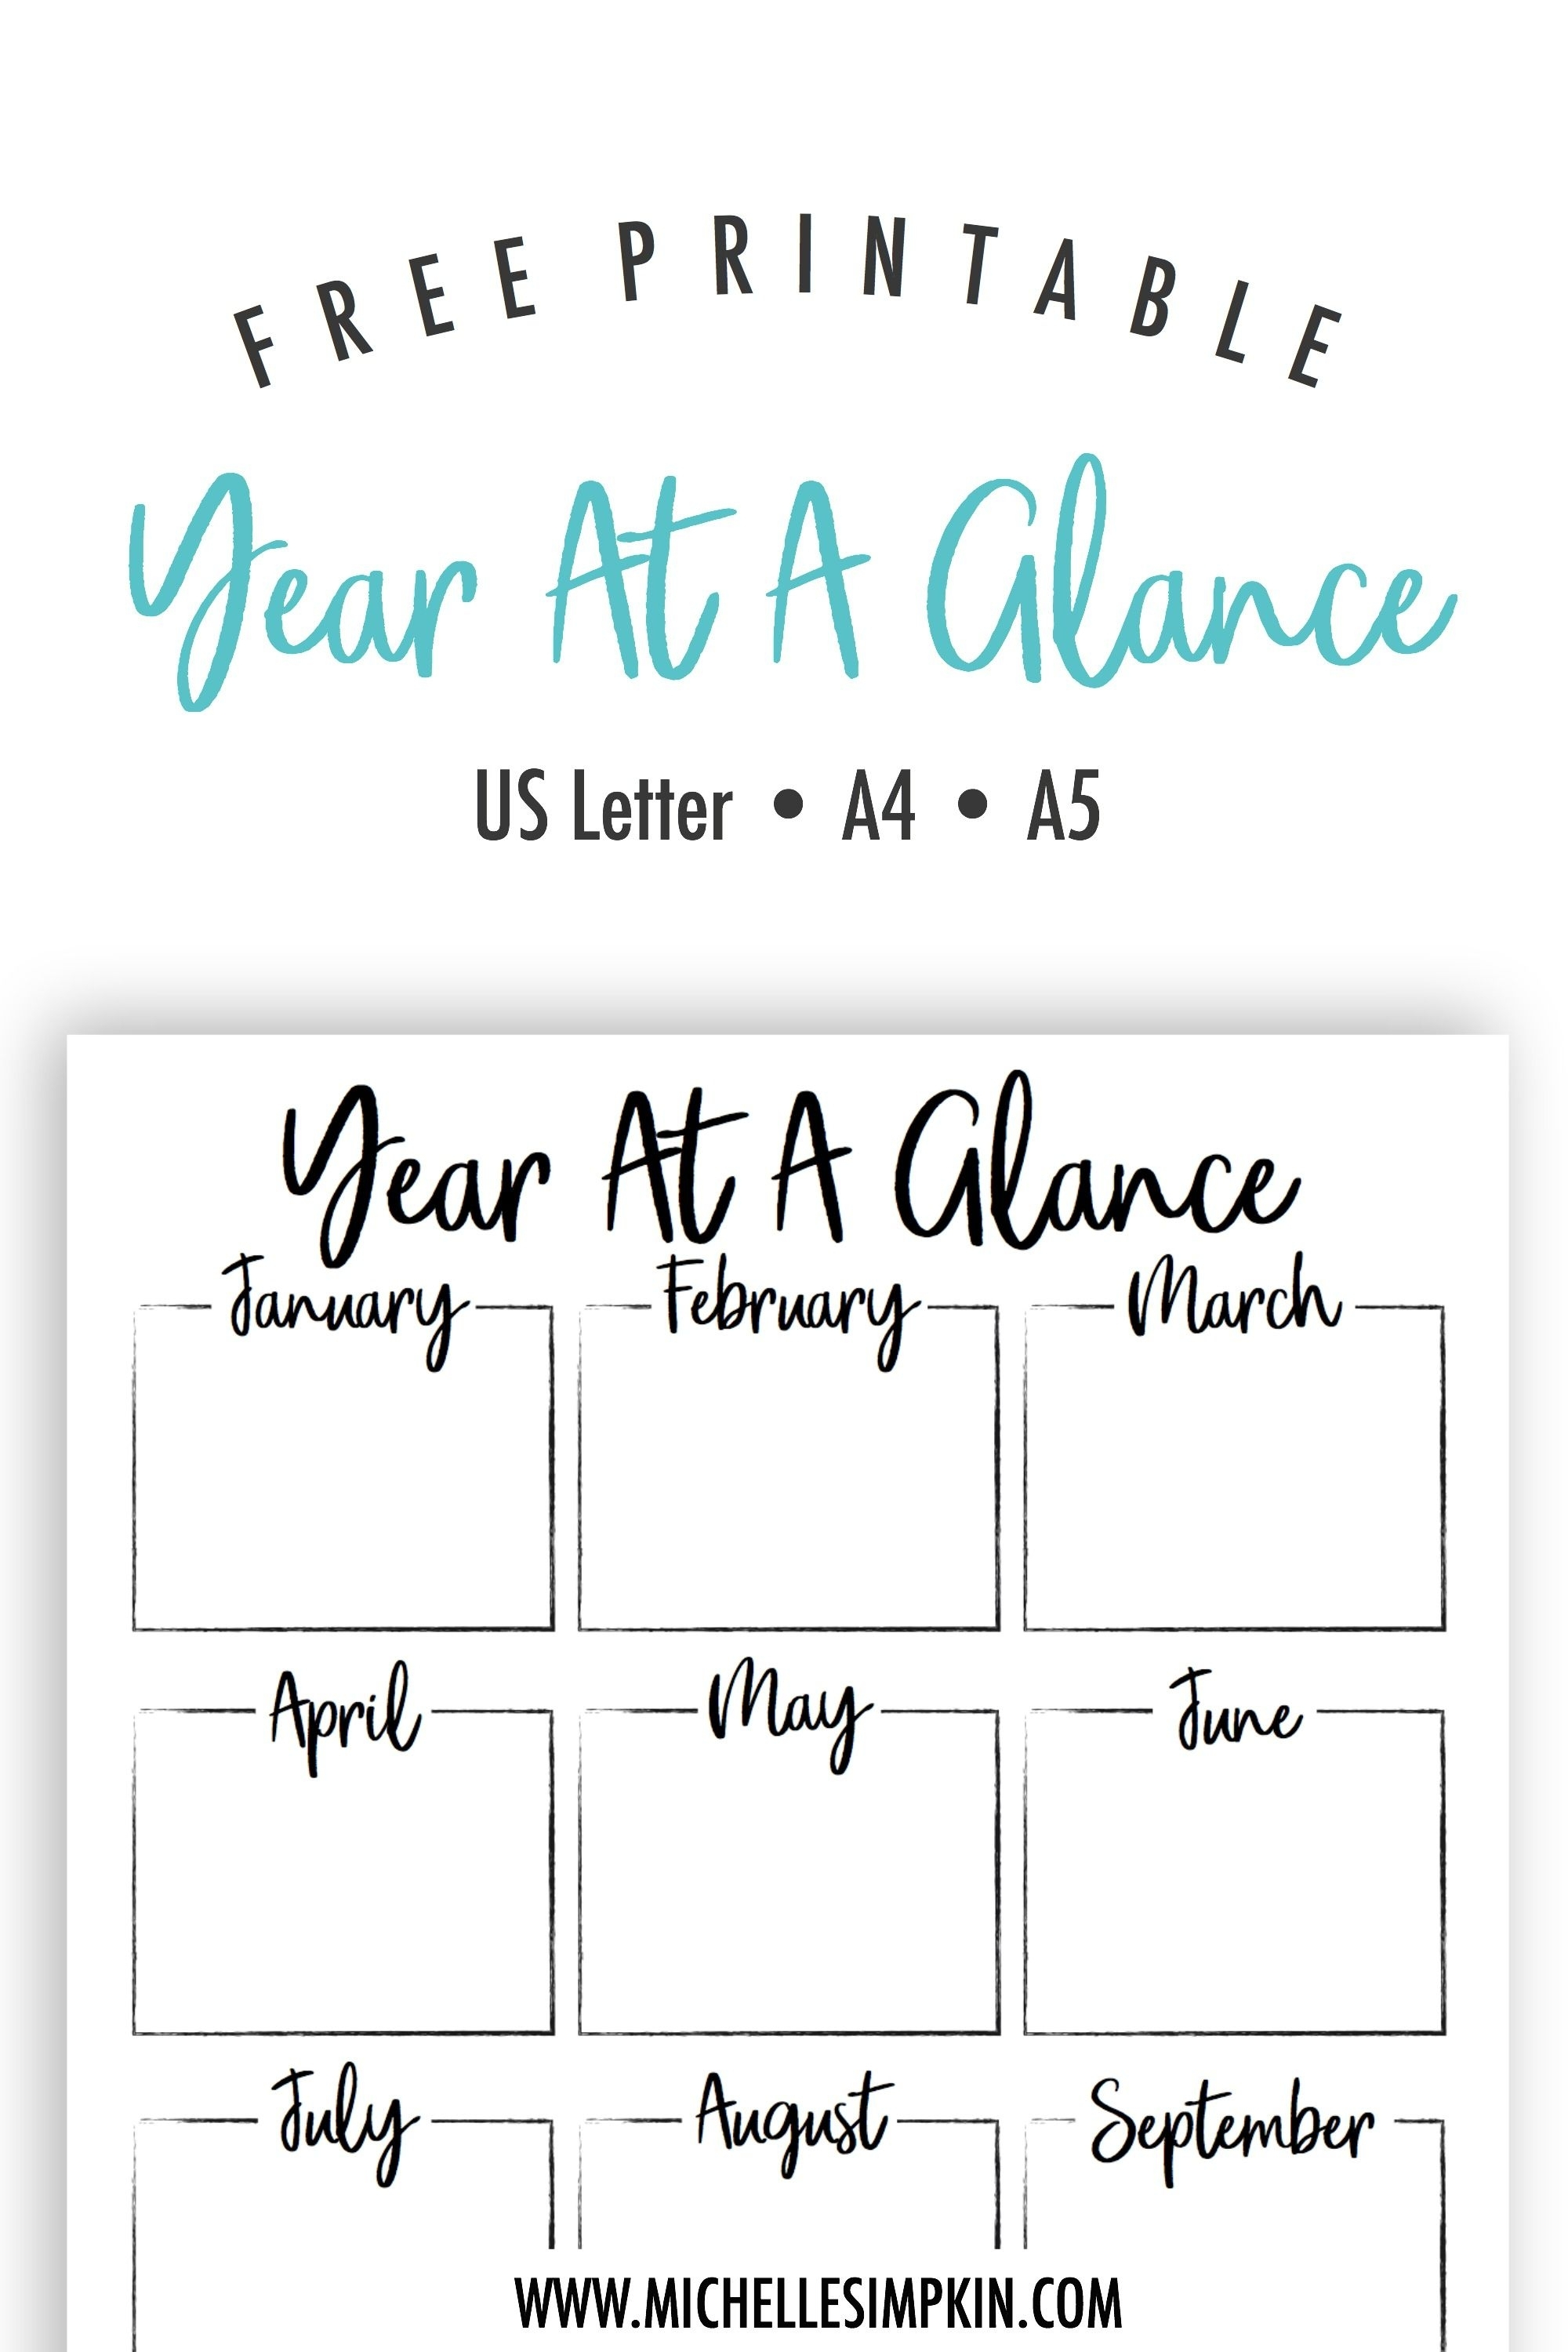 Free Printable - This Year At A Glance Printable Will Help You Plan pertaining to Year At A Glance Printable